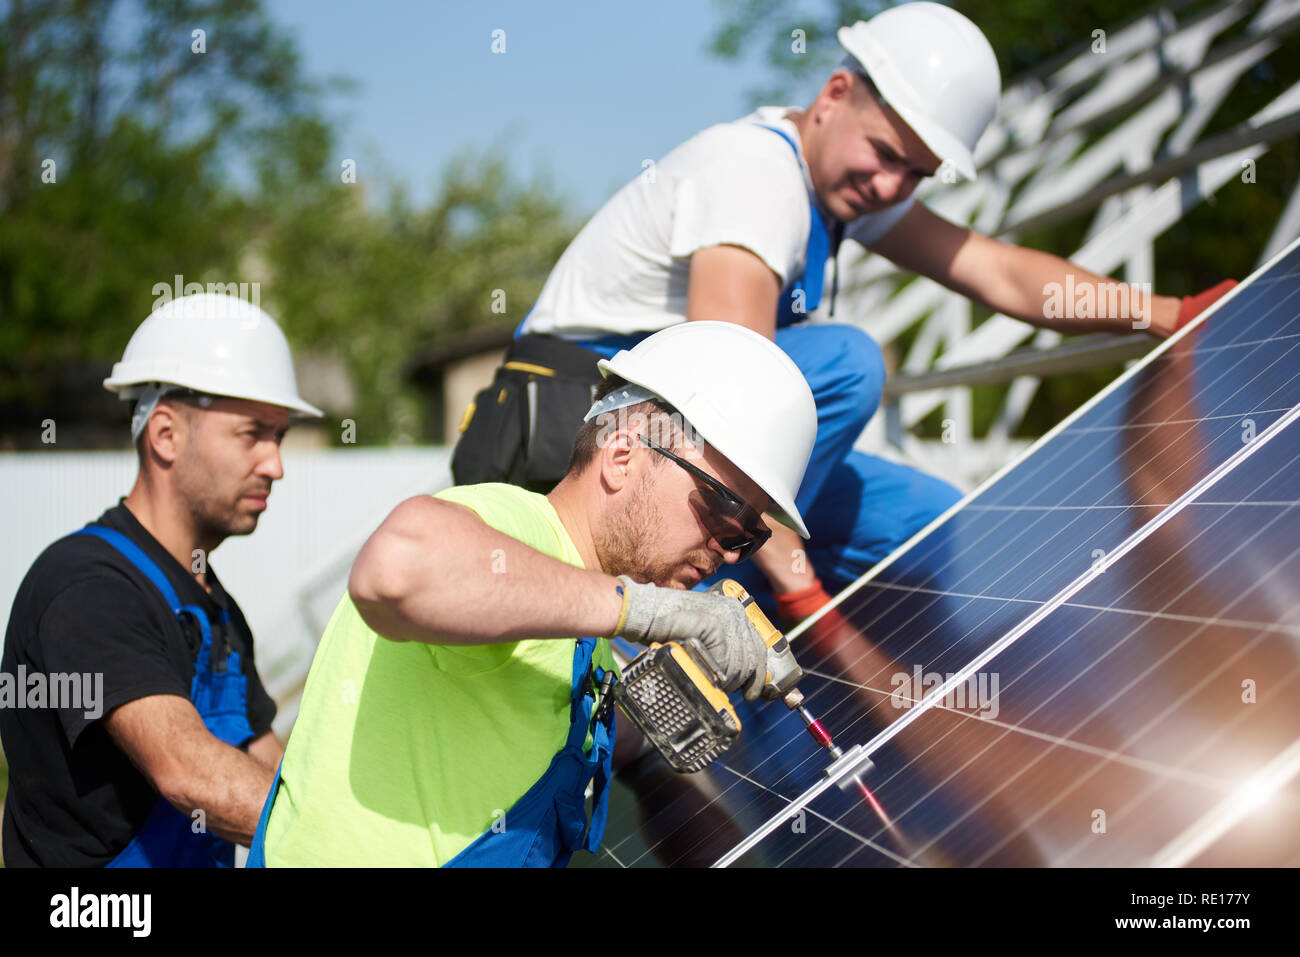 Three professional technicians installing solar photo voltaic panel to metal platform on blue sky background. Stand-alone solar system installation, efficiency and professionalism concept. - Stock Image